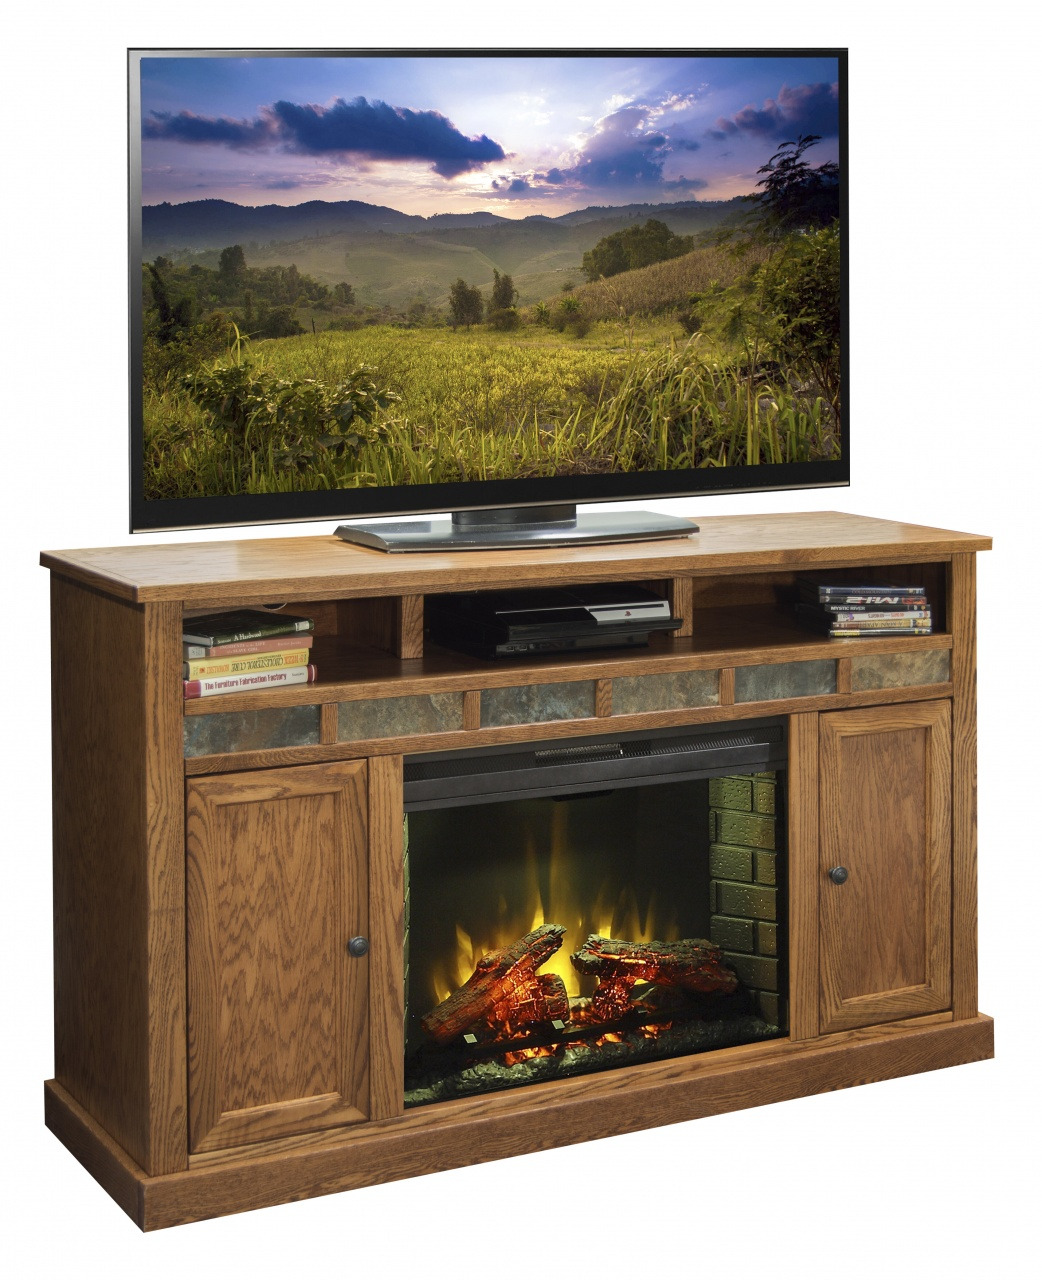 ember hearth electric media fireplace legends furniture oak creek tv stand for tvs up to 70 inches from ember hearth electric media fireplace